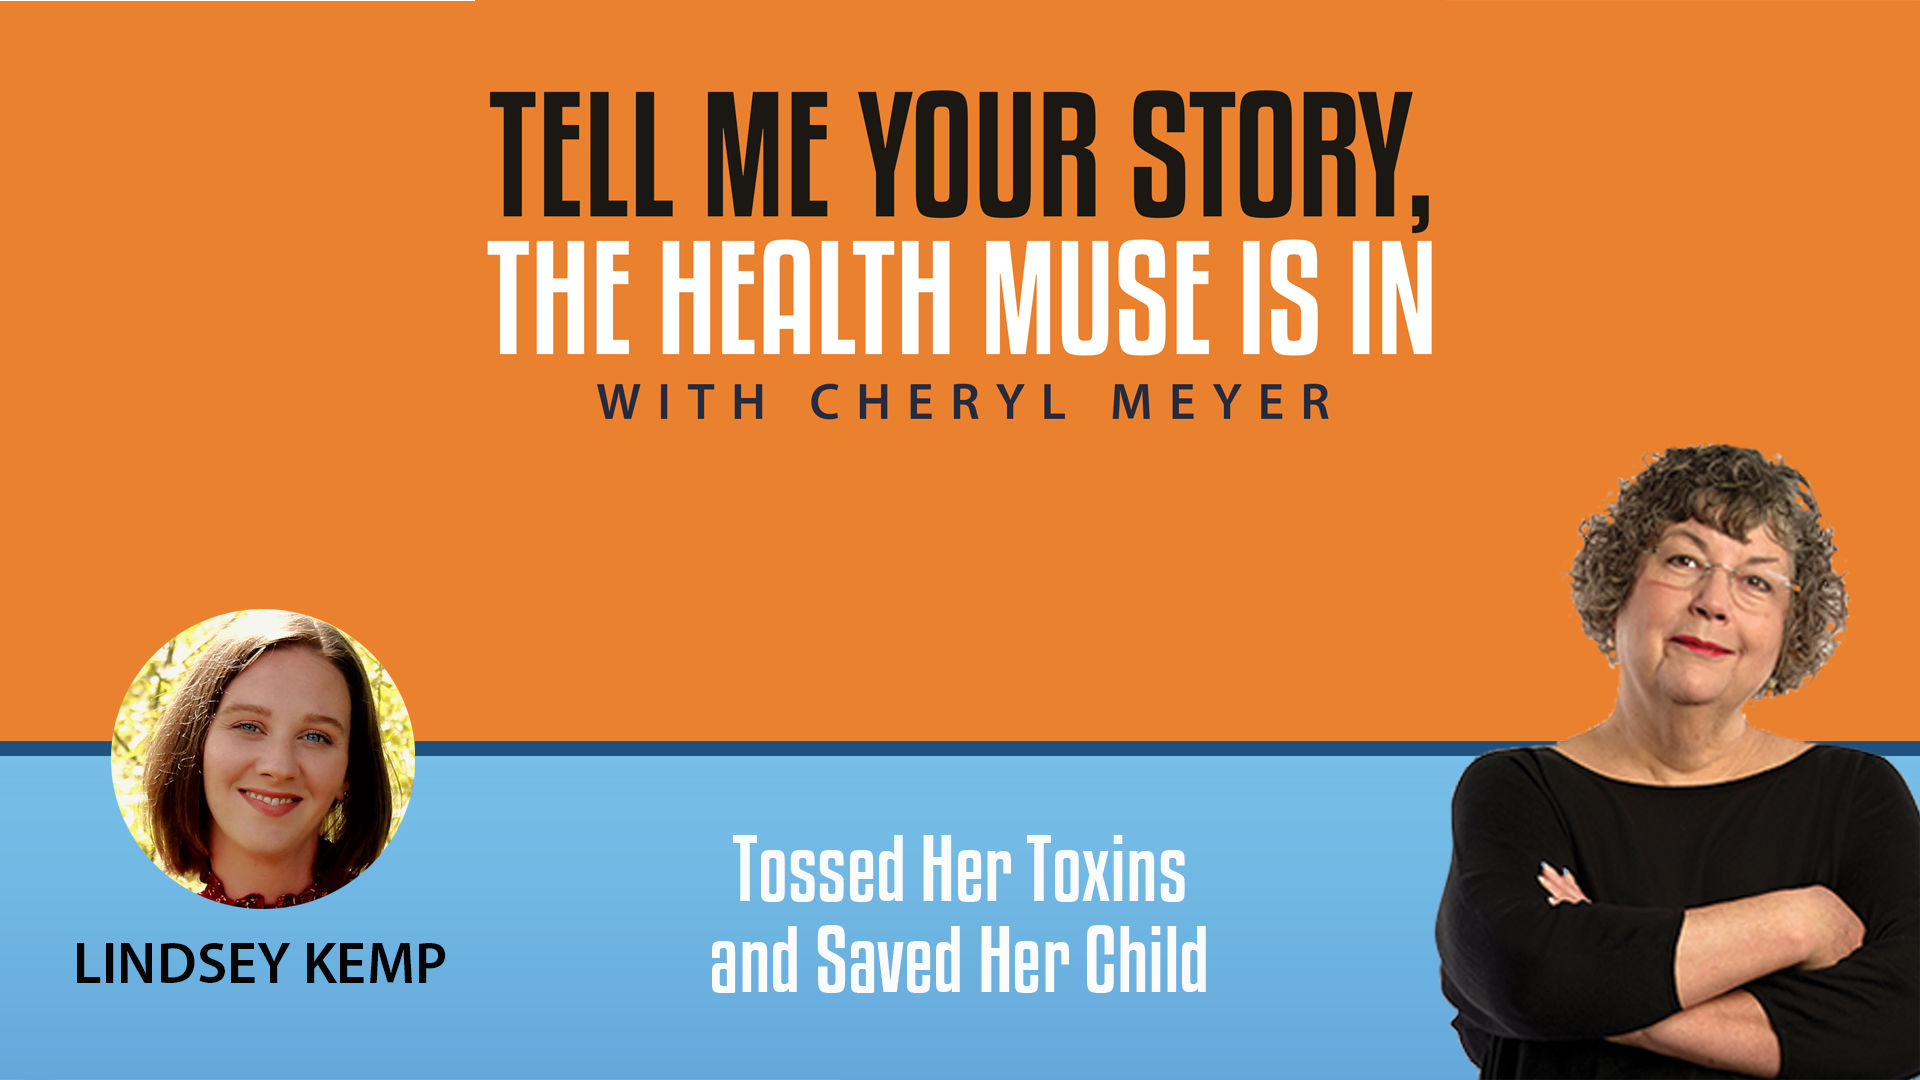 Tell Me Your Story Lindsey Kemp, Tossed Her Toxins and Saved Her Child's Life